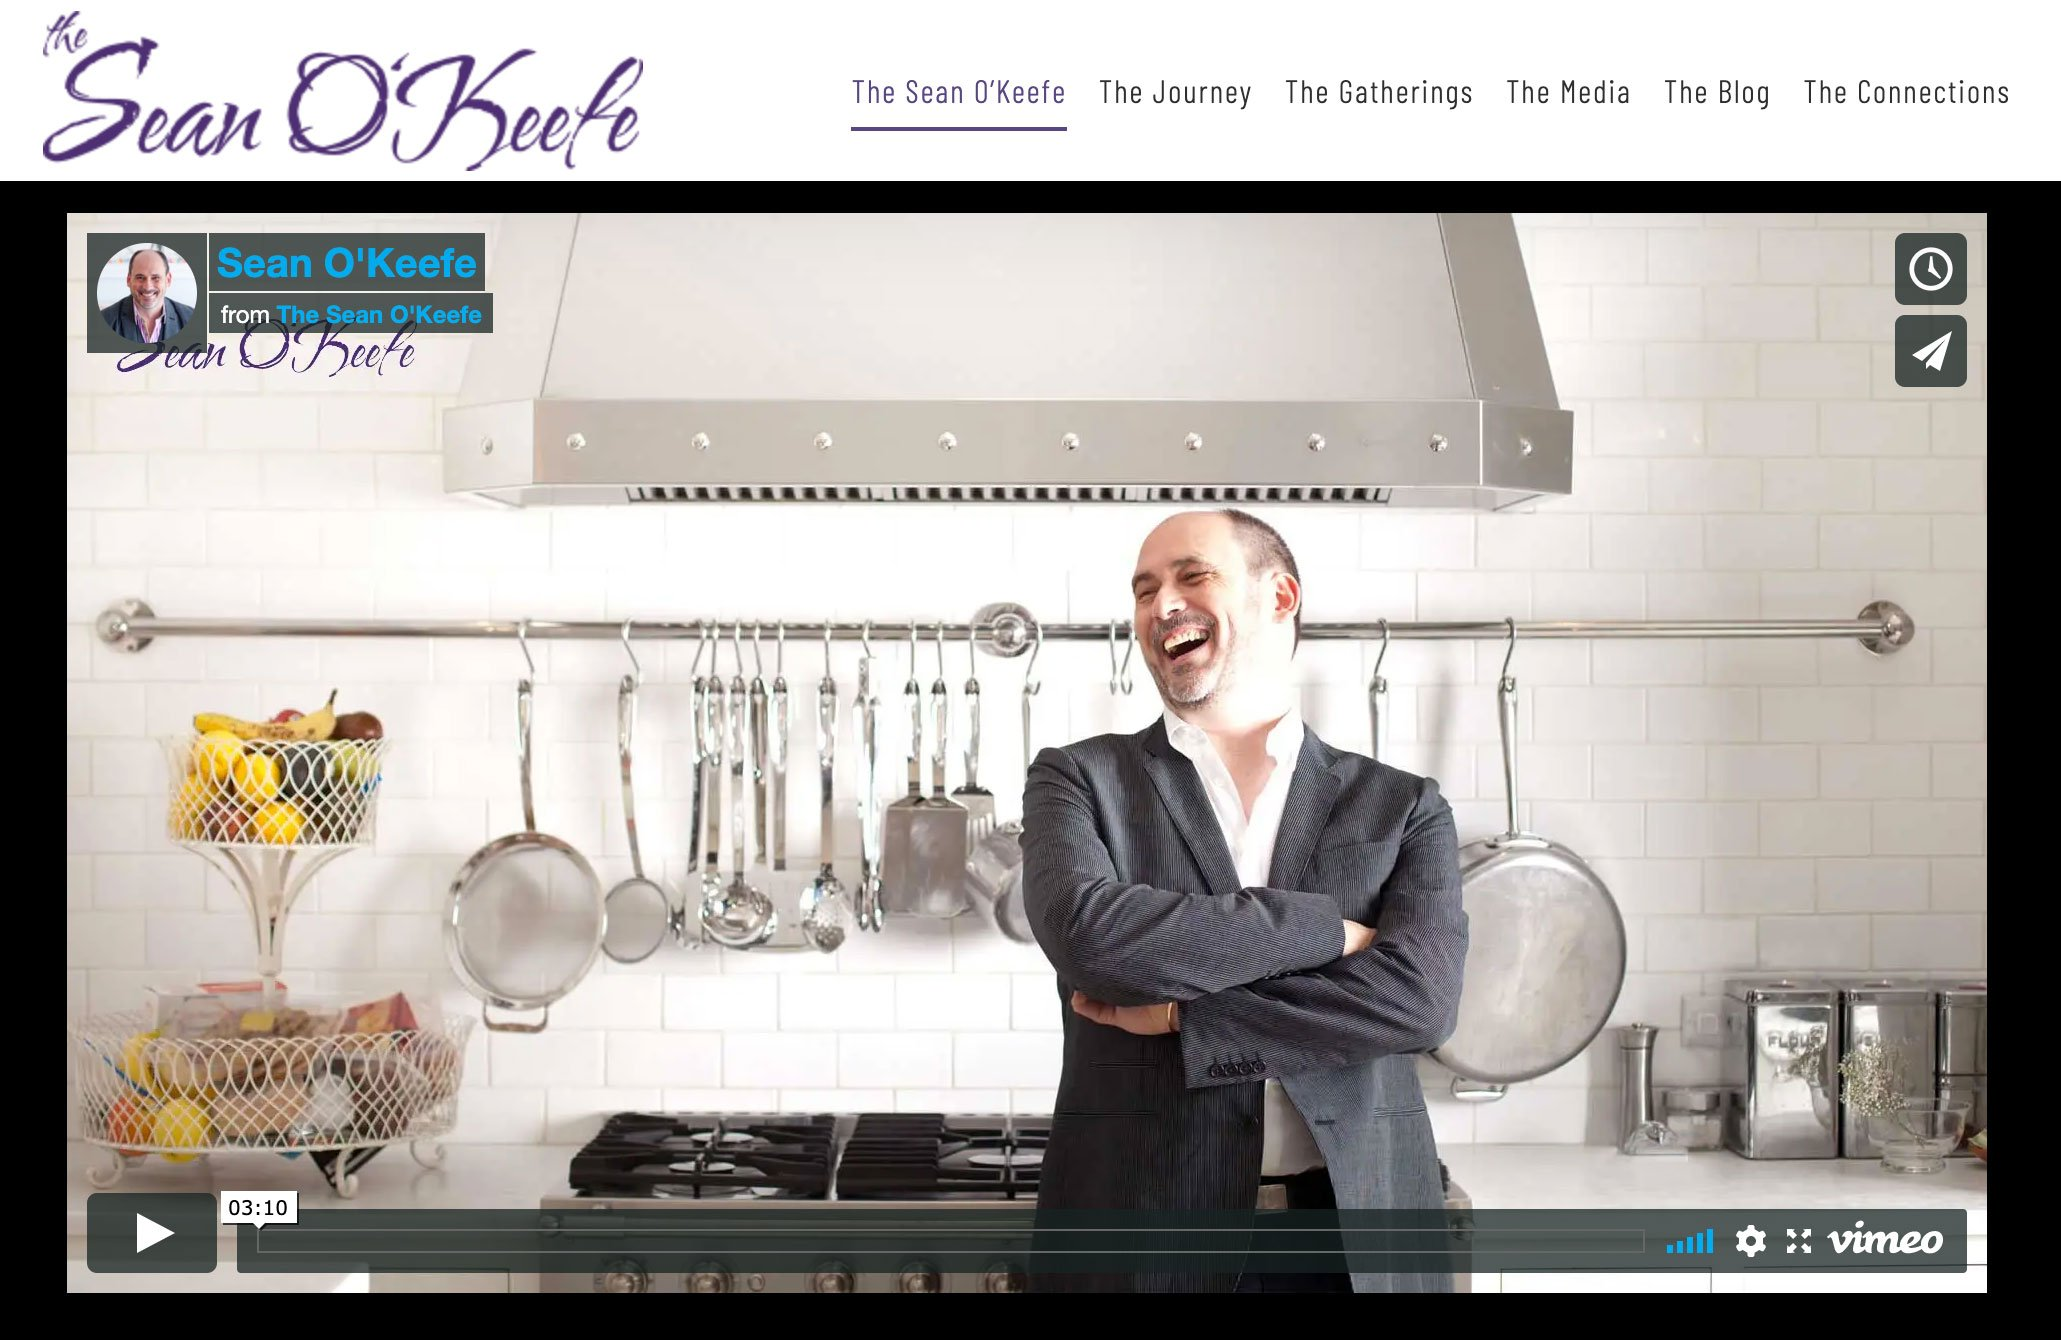 The Sean O'Keefe website gives users the full experience